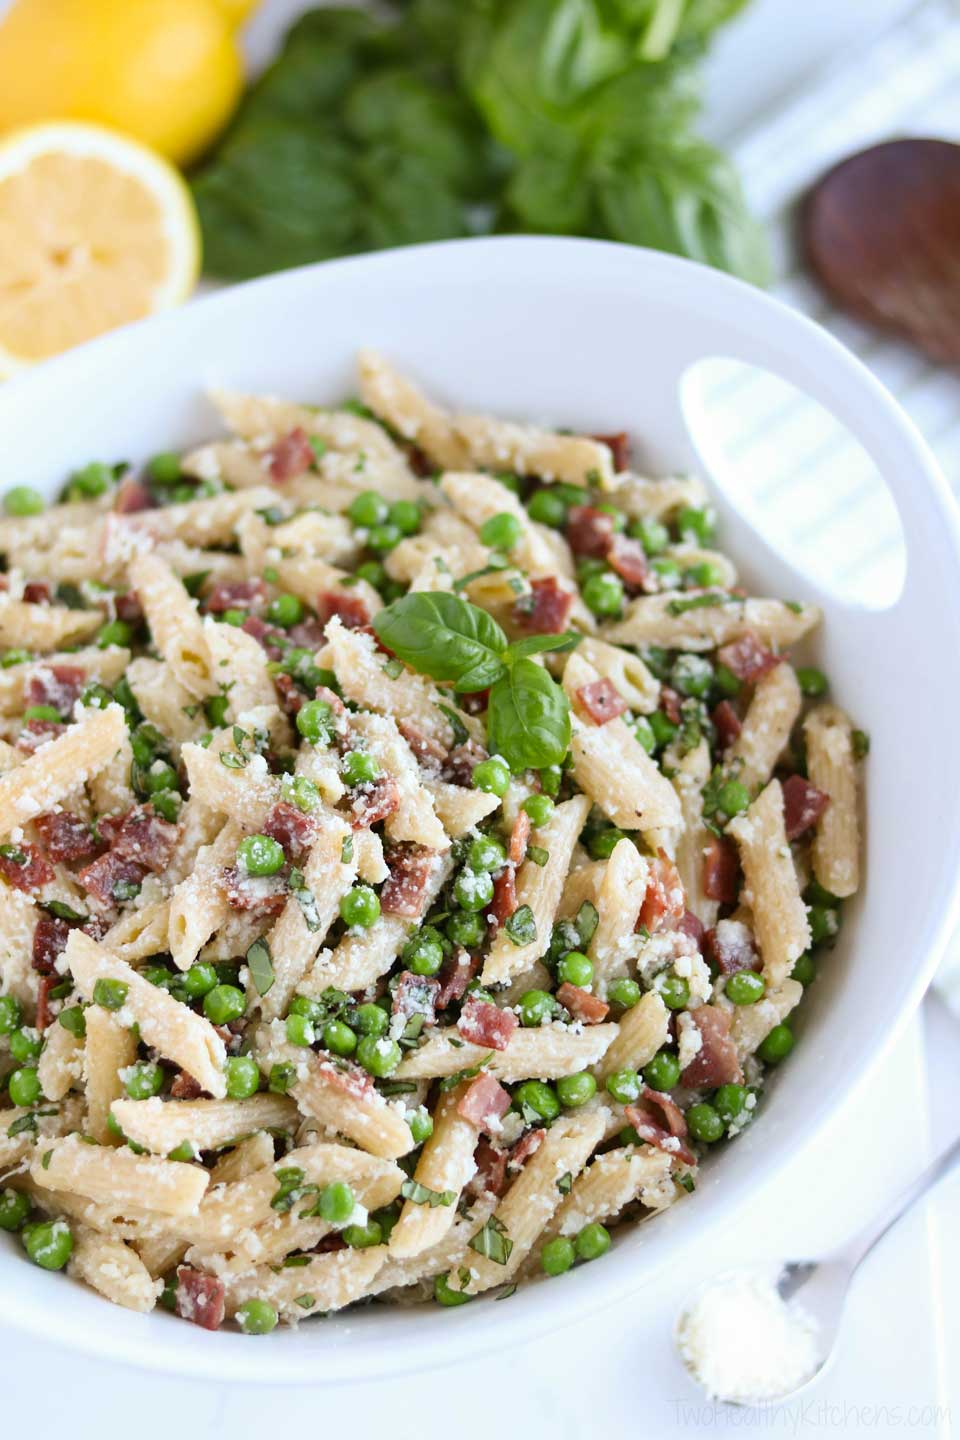 Although the original recipe for Pasta with Prosciutto was incredibly delicious, we're just as happy with this lighter Pasta and Peas recipe that makes use of turkey bacon to drastically reduce the fat.